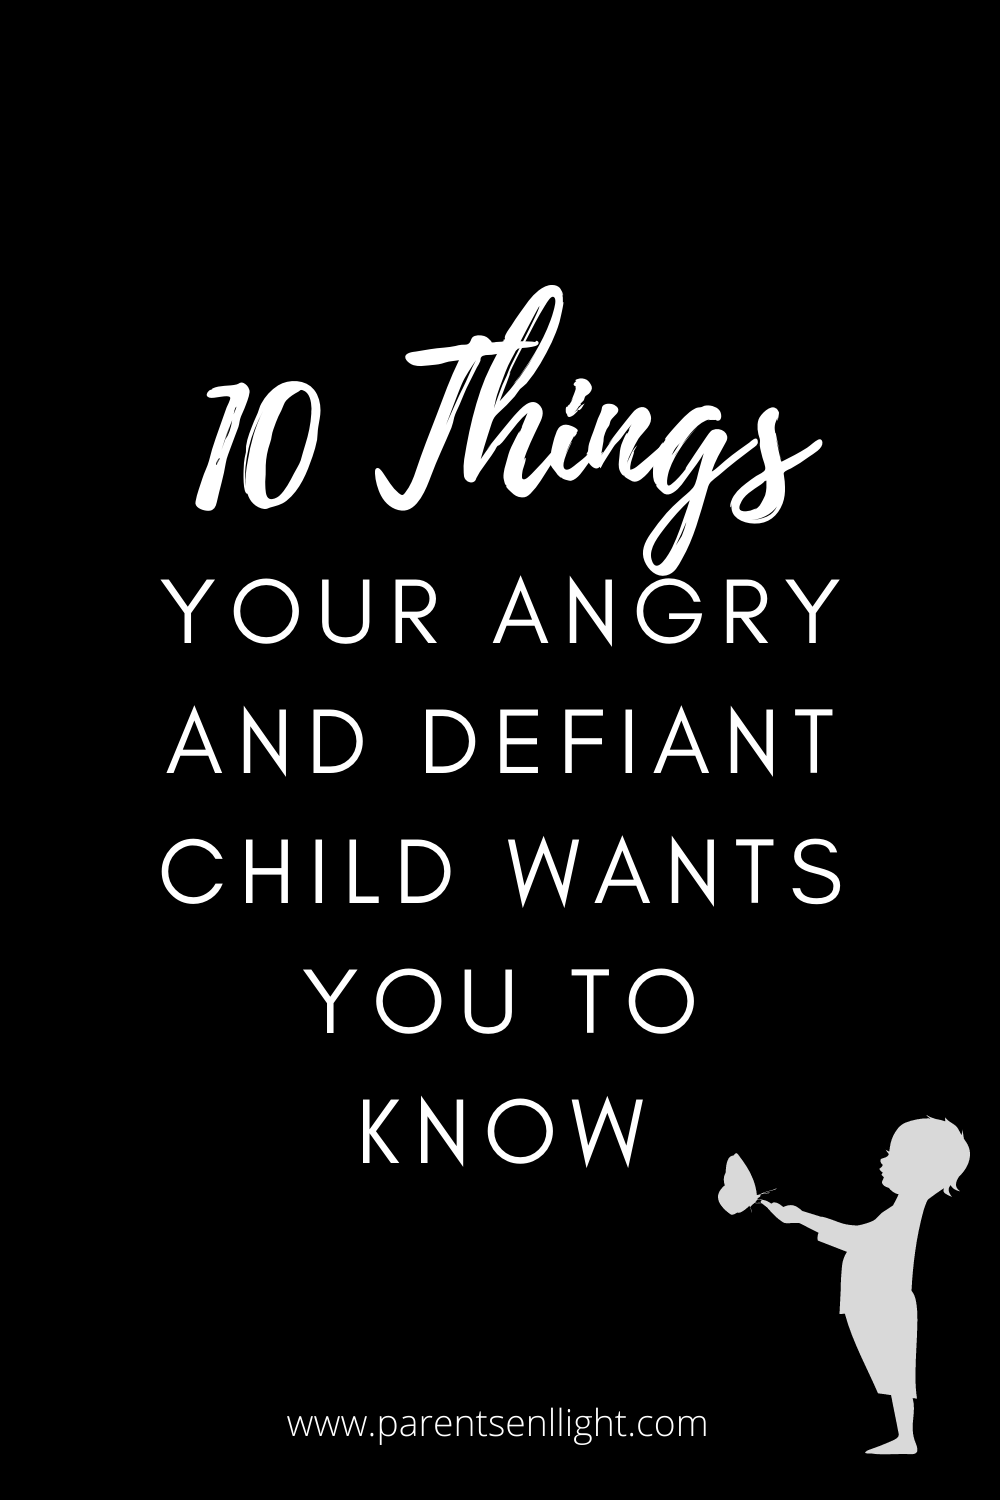 If your child is angry and defiant, if you no longer know how to find the connection and lobe that you once had, cosider this before you choose on your next parenting strategy #children'sbehavior #children'sbigfeelings #tantrums #handelingtantrums #anger #defiance #parenting #positiveparenting #motherhood